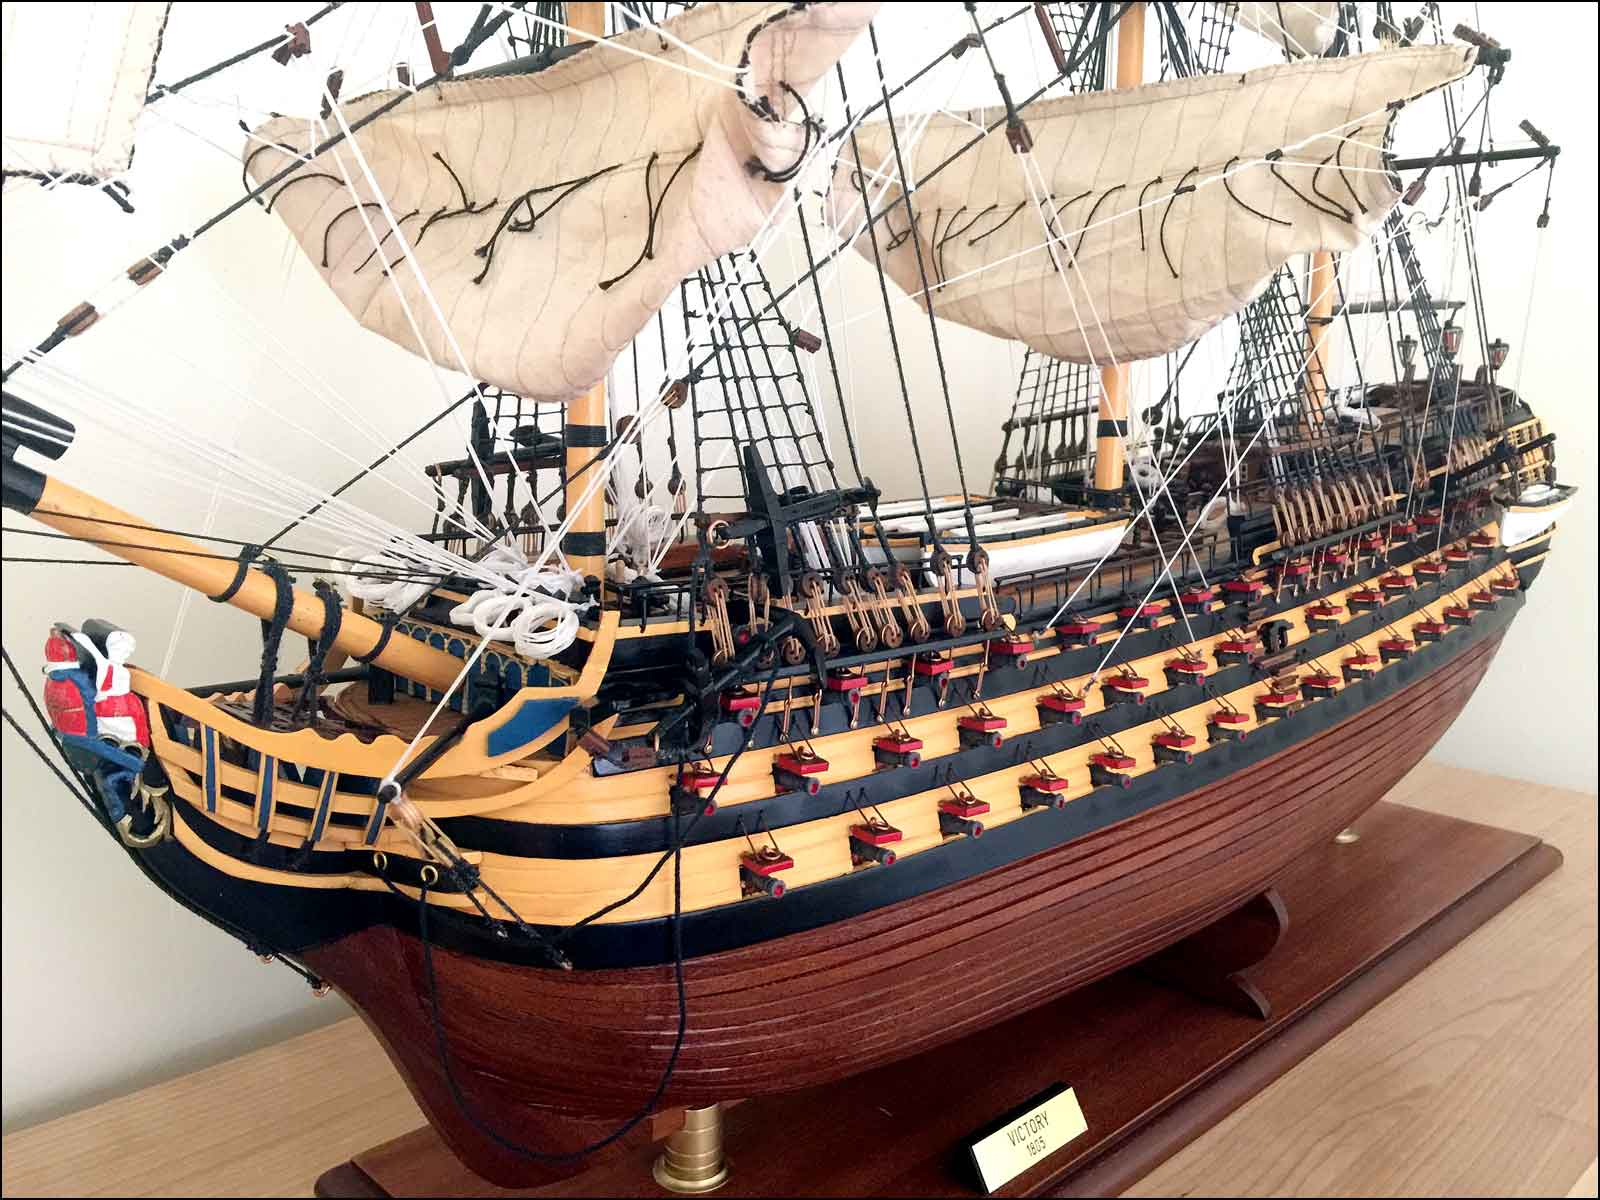 completed model of HMS Victory first rate